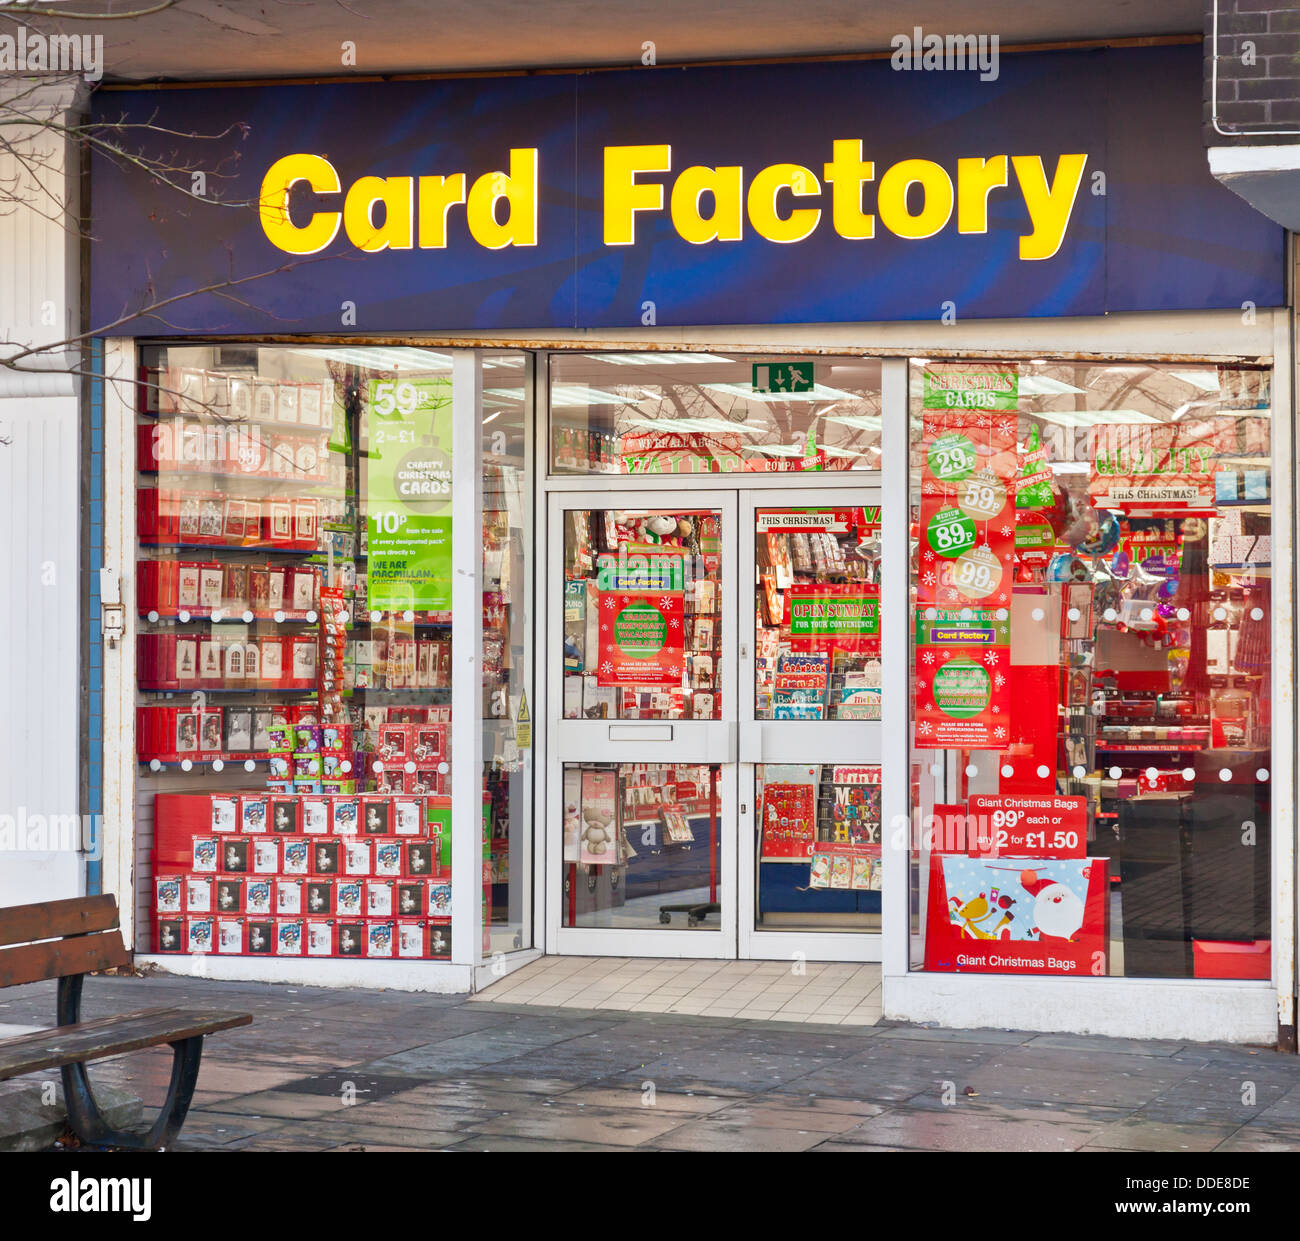 Frontage of the card factory a greetings card and gift shop chain frontage of the card factory a greetings card and gift shop chain this one located in airdrie lanarkshire scotland m4hsunfo